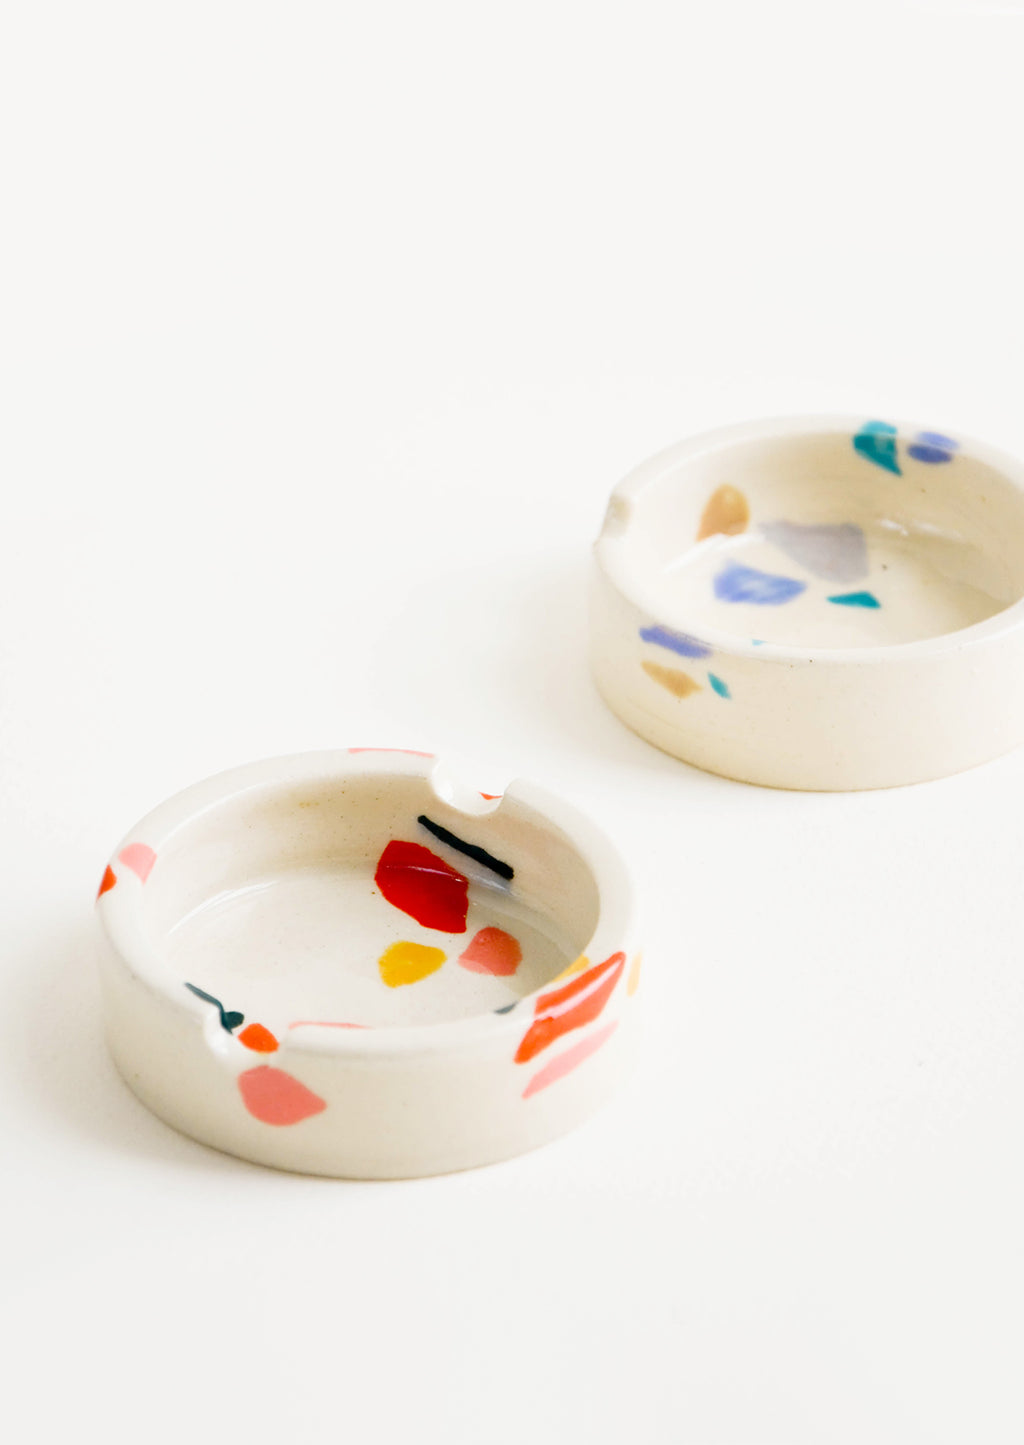 1: Ceramic ashtray with allover hand painted terrazzo pattern in a variety of colors